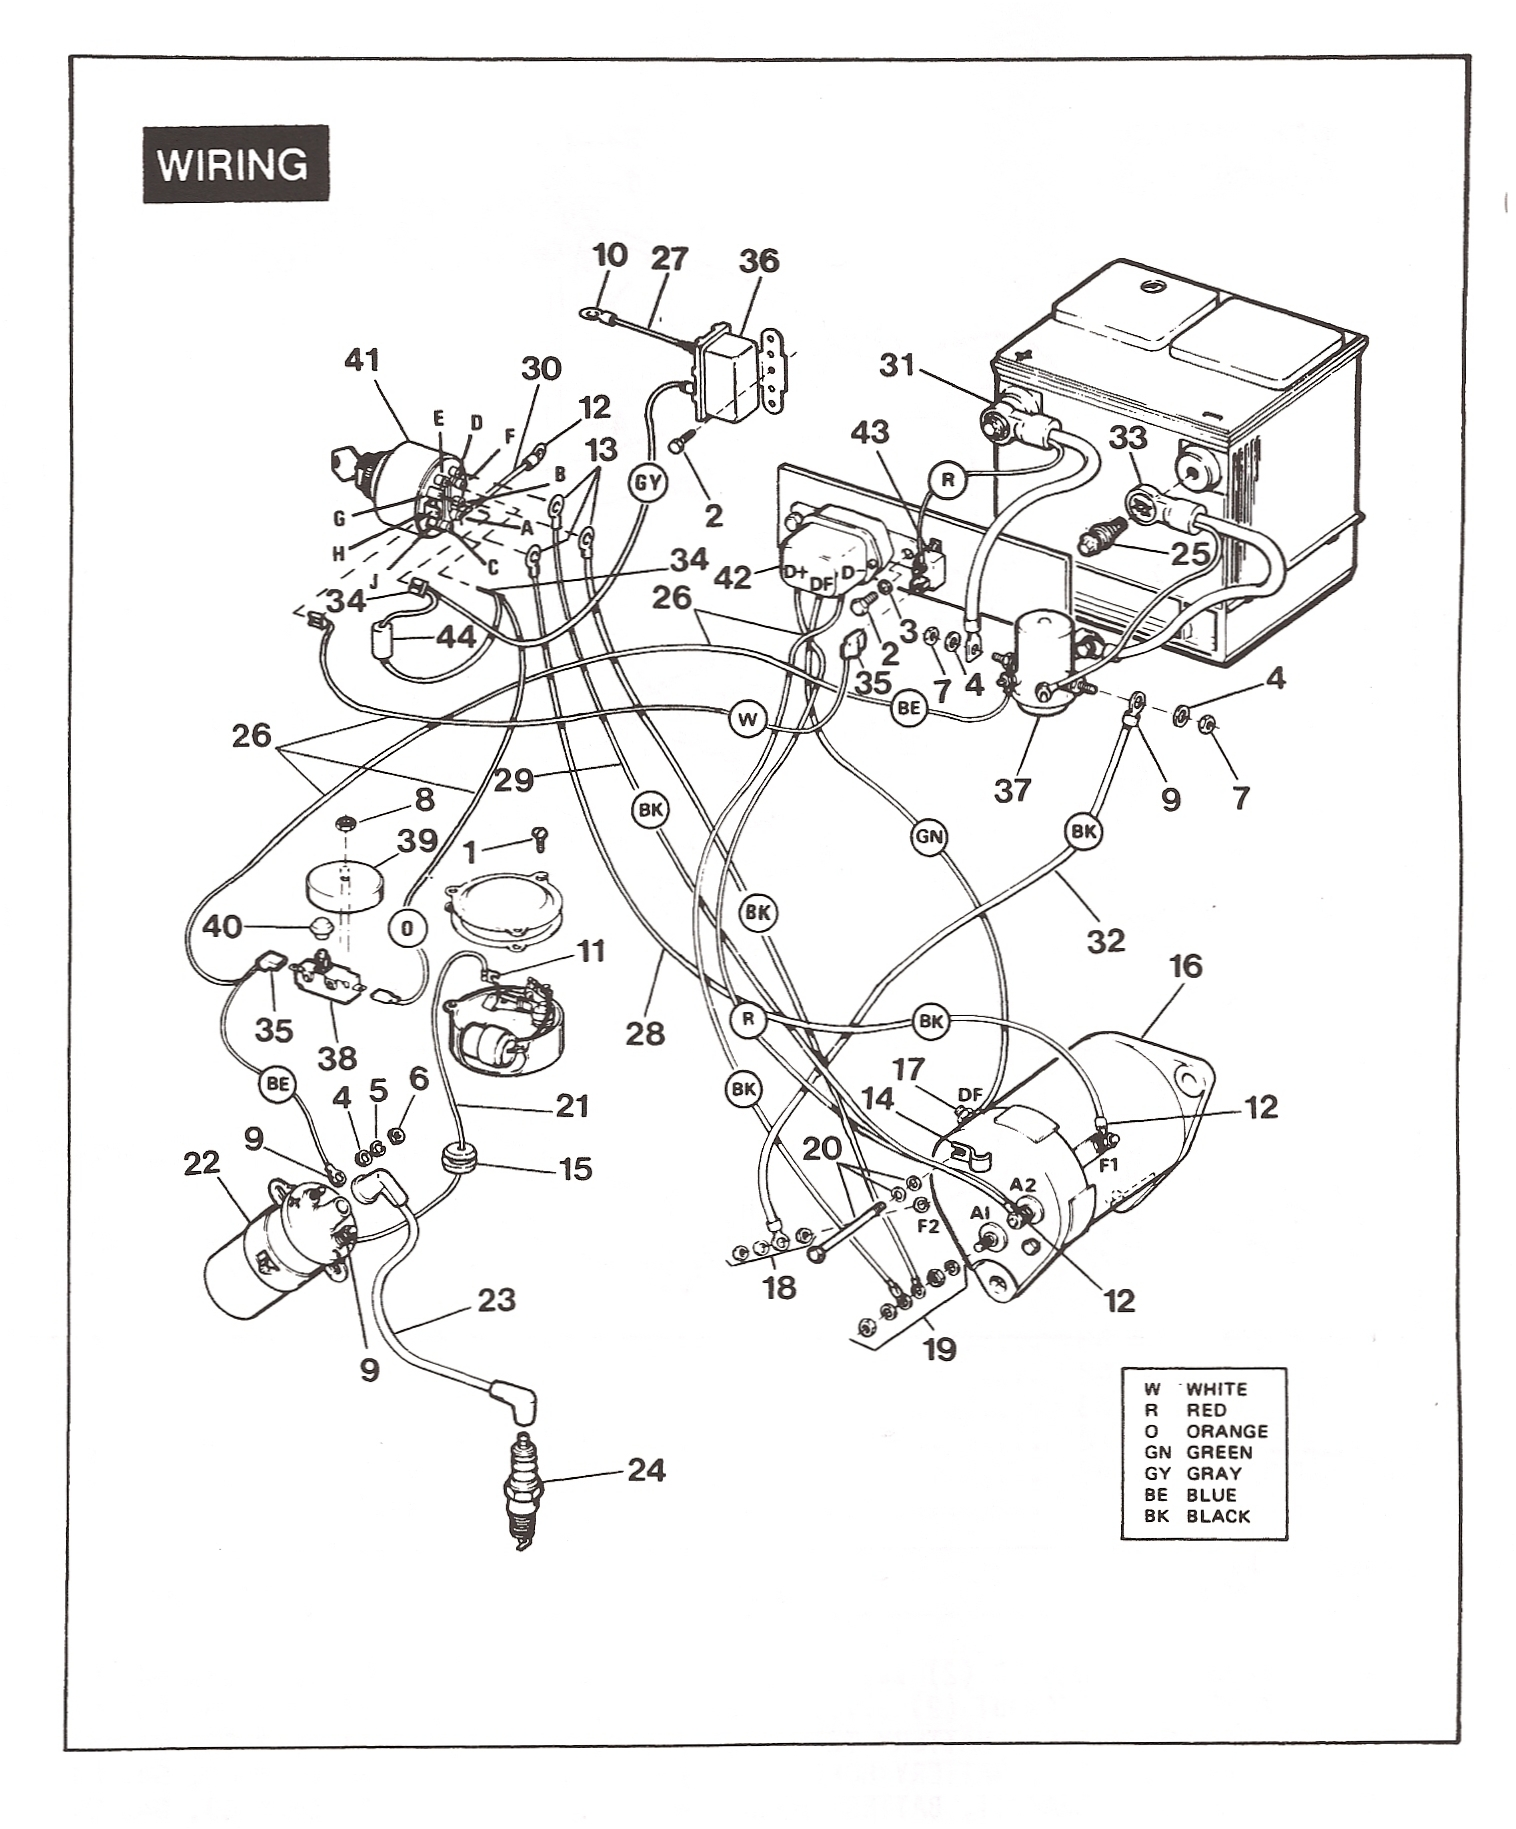 Columbia Par Car Wiring Diagram & Club Car Wiring Diagram 36 Volt Amf Harley Davidson Golf Cart Serial Number Harley Golf Cart Wiring Diagram Harley Davidson Gas Golf Cart Parts